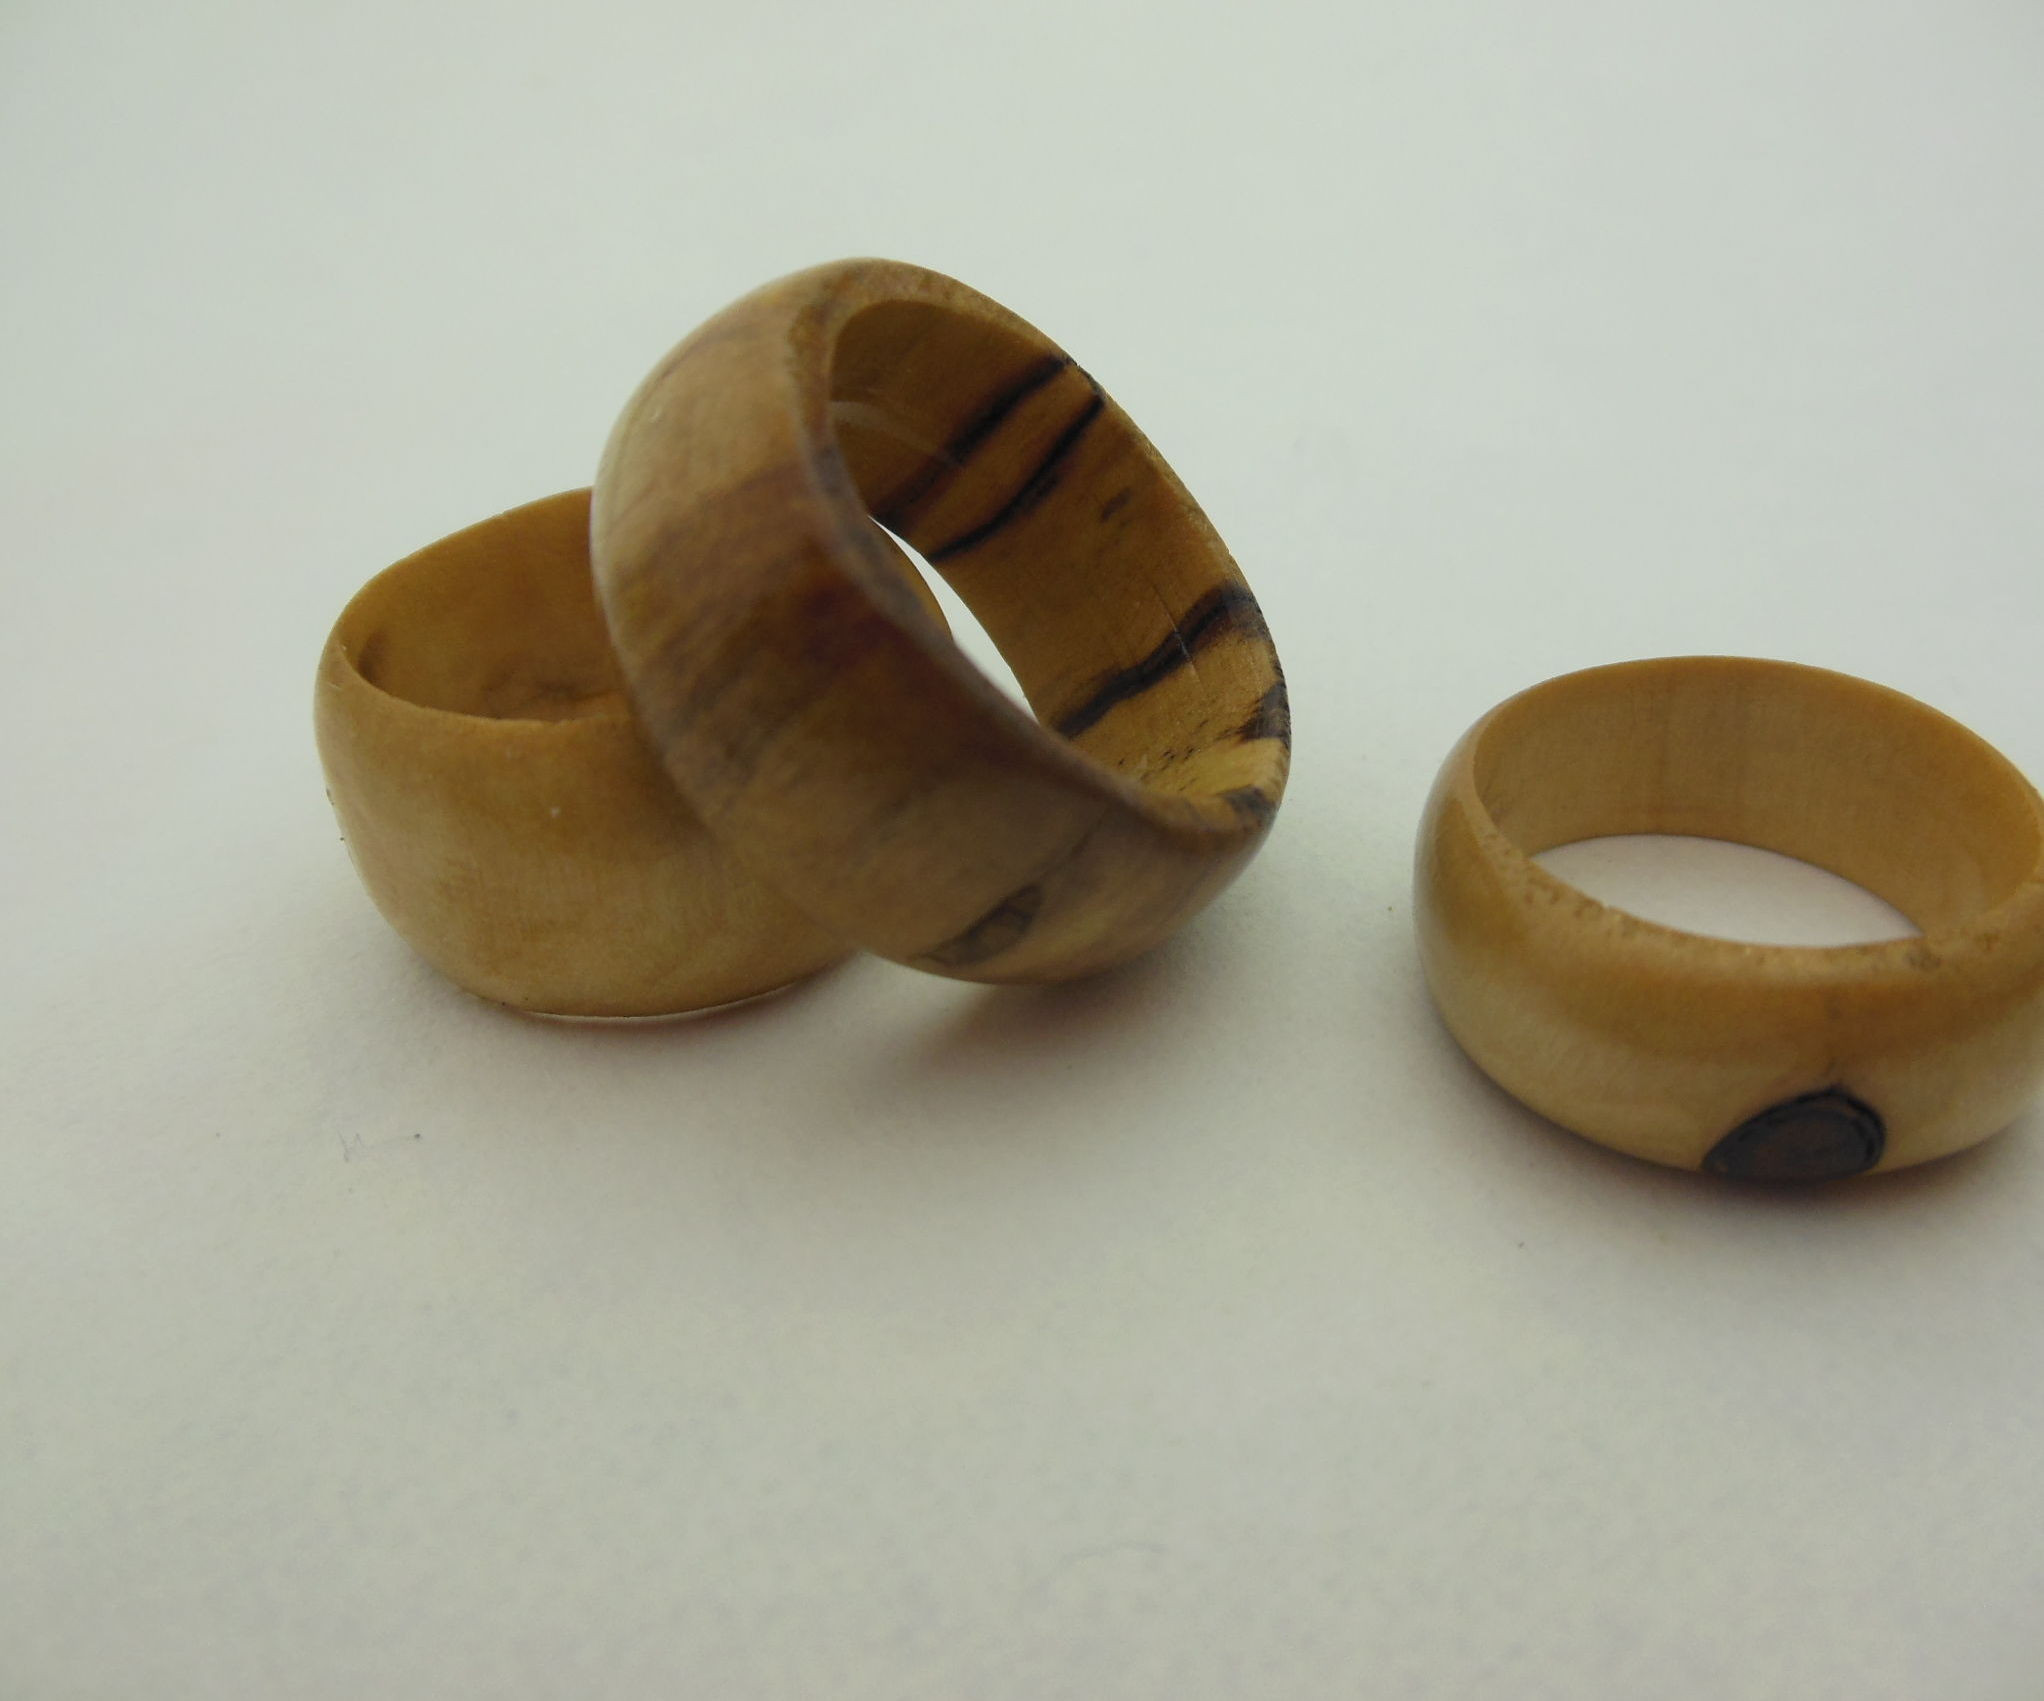 Best ideas about Wood Ring DIY . Save or Pin DIY Wooden Ring Now.